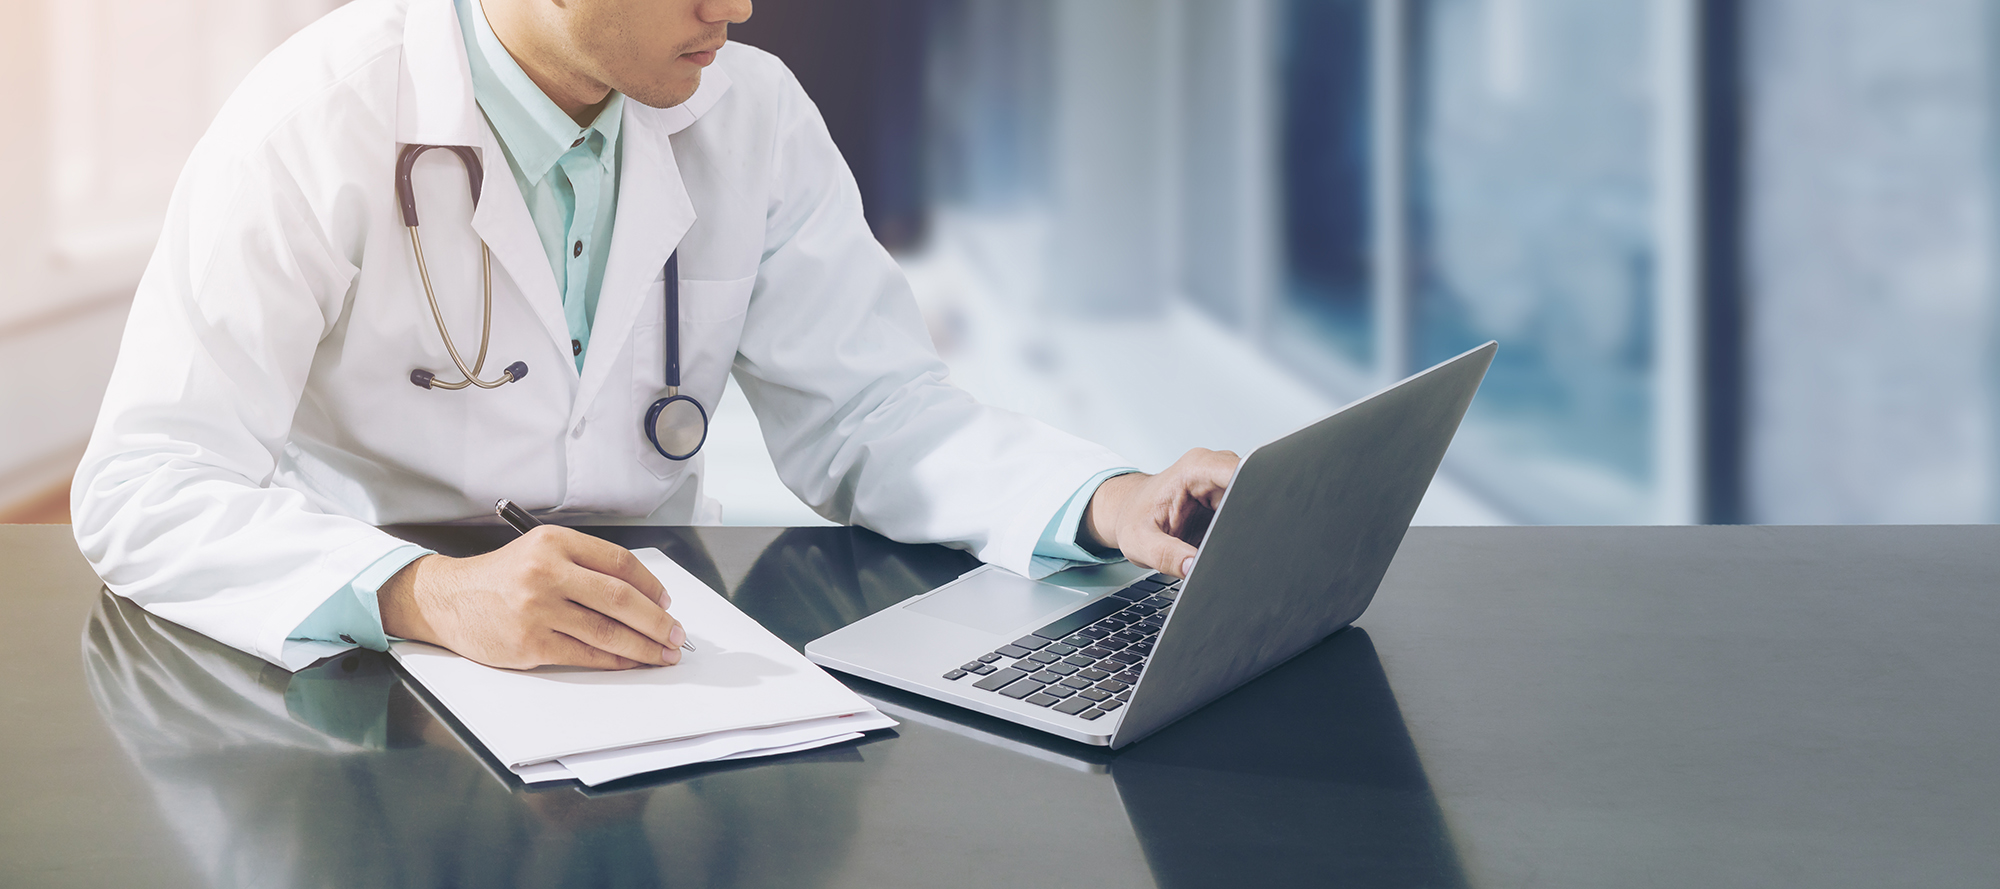 Doctor using a computer while taking notes.